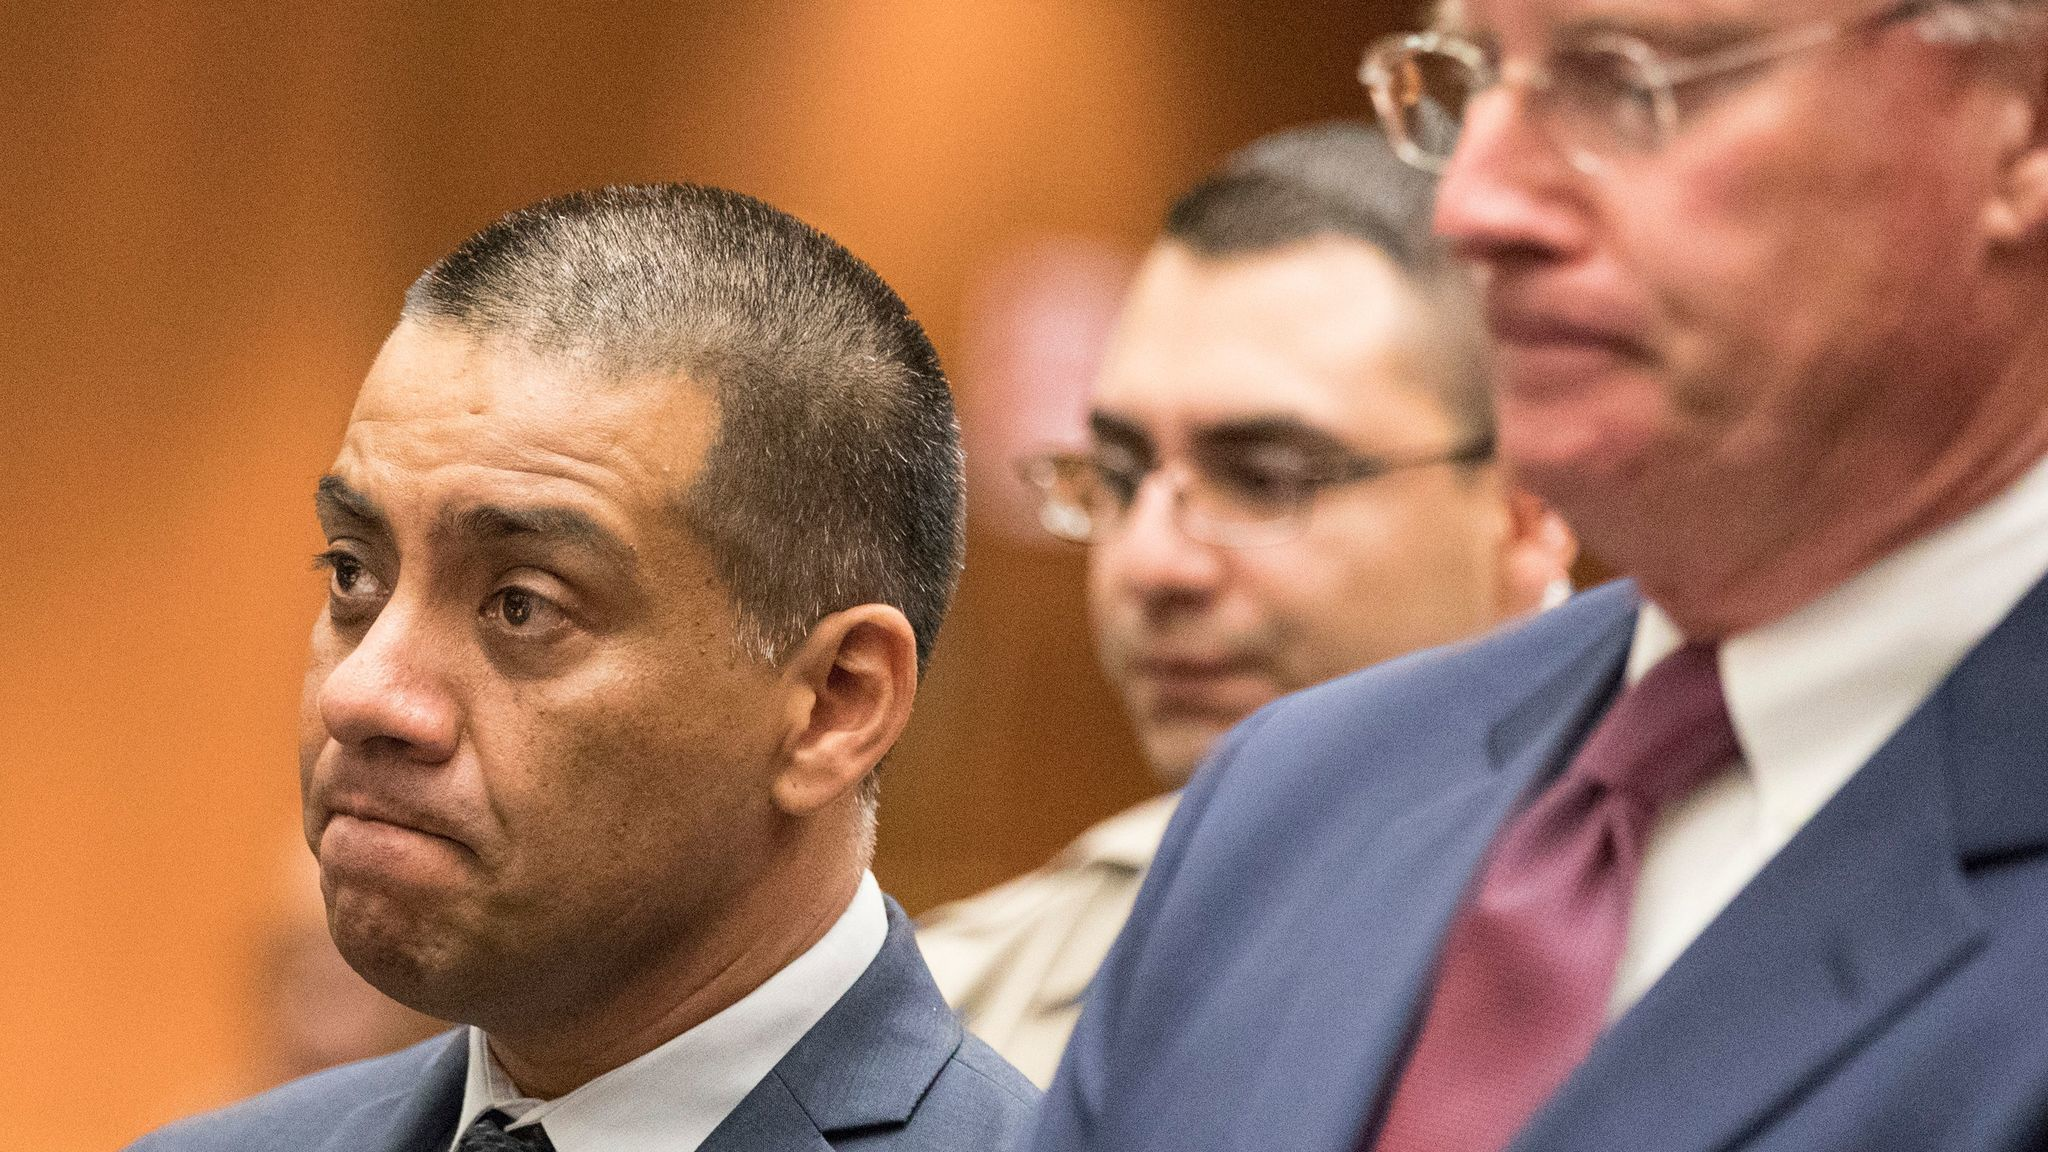 L.A. school board member Ref Rodriguez, left, appears in court this month with his attorney, Daniel V. Nixon.